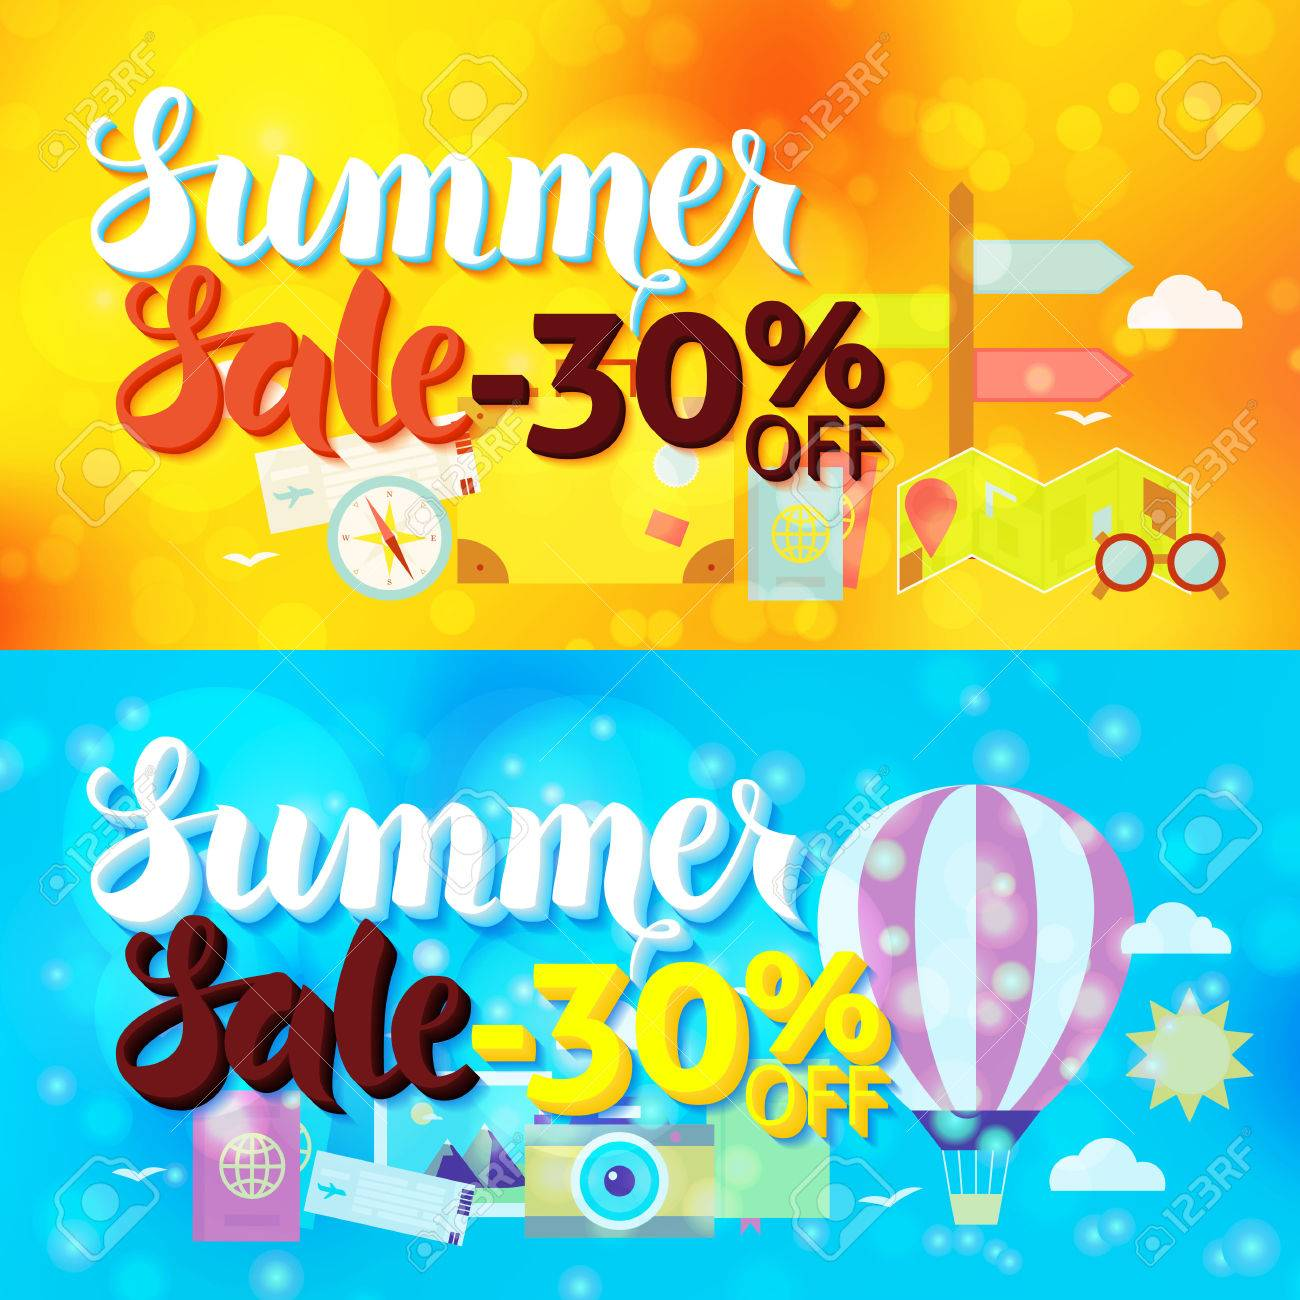 Travel Promotion Banners Antique Ribbon Banners